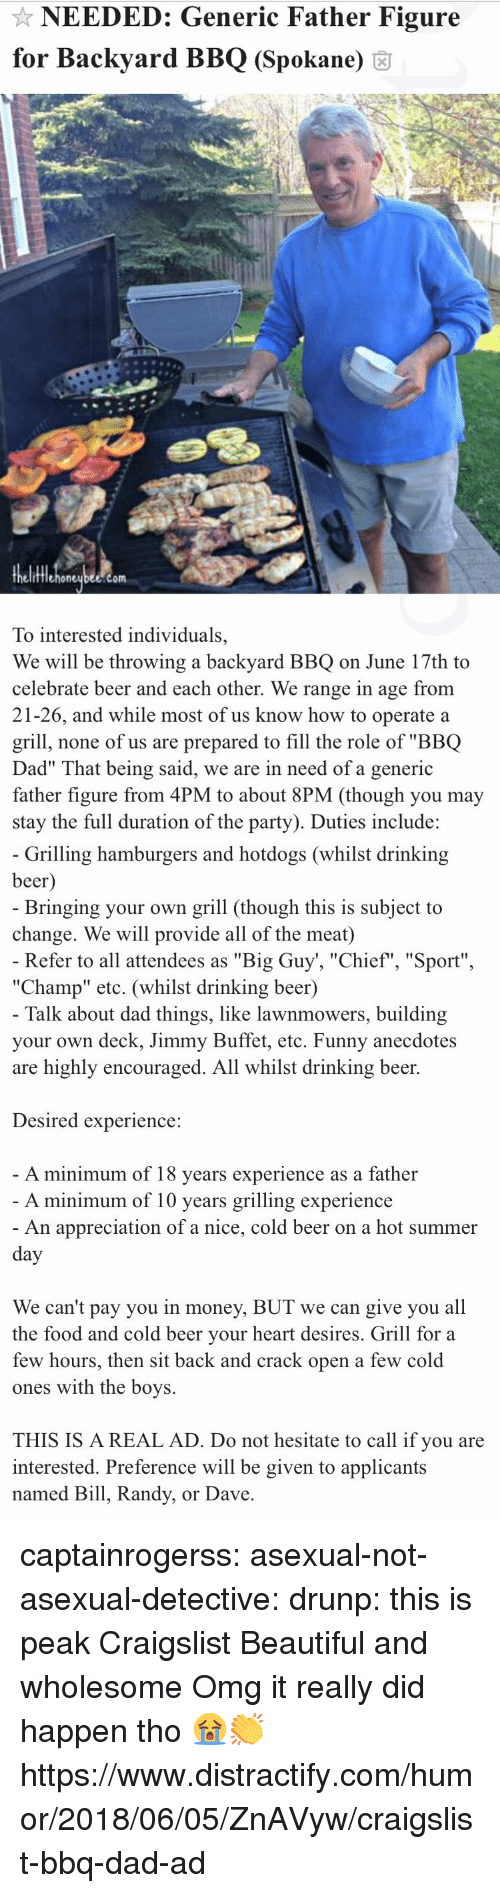 """Beautiful, Beer, and Craigslist: NEEDED: Generic Father Figure  for Backyard BBQ (Spokane) 6  fflehoneubee.com  To interested individuals,  We will be throwing a backyard BBQ on June 17th to  celebrate beer and each other. We range in age from  21-26, and while most of us know how to operate a  grill, none of us are prepared to fill the role of """"BBQ  Dad"""" That being said, we are in need of a generic  father figure from 4PM to about 8PM (though you may  stay the full duration of the party). Duties include:   Grilling hamburgers and hotdogs (whilst drinking  beer  Bringing your own grill (though this is subject to  change. We will provide all of the meat)  Refer to all attendees as """"Big Guy', """"Chief"""", """"Sport""""  """"Champ"""" etc. (whilst drinking beer)  Talk about dad things, like lawnmowers, building  your own deck, Jimmy Buffet, etc. Funny anecdotes  are highly encouraged. All whilst drinking beer.  Desired experience:  A minimum of 18 vears experience as a father  A minimum of 10 years grilling experience  An appreciation of a nice, cold beer on a hot summer  We can't pay you in money, BUT we can give you all  the food and cold beer vour heart desires. Grill for a  few hours, then sit back and crack open a few cold  ones with the boys.  THIS IS A REAL AD. Do not hesitate to call if you are  interested. Preference will be given to applicants  named Bill, Randy, or Dave captainrogerss:   asexual-not-asexual-detective:   drunp: this is peak Craigslist  Beautiful and wholesome   Omg it really did happen tho 😭👏 https://www.distractify.com/humor/2018/06/05/ZnAVyw/craigslist-bbq-dad-ad"""